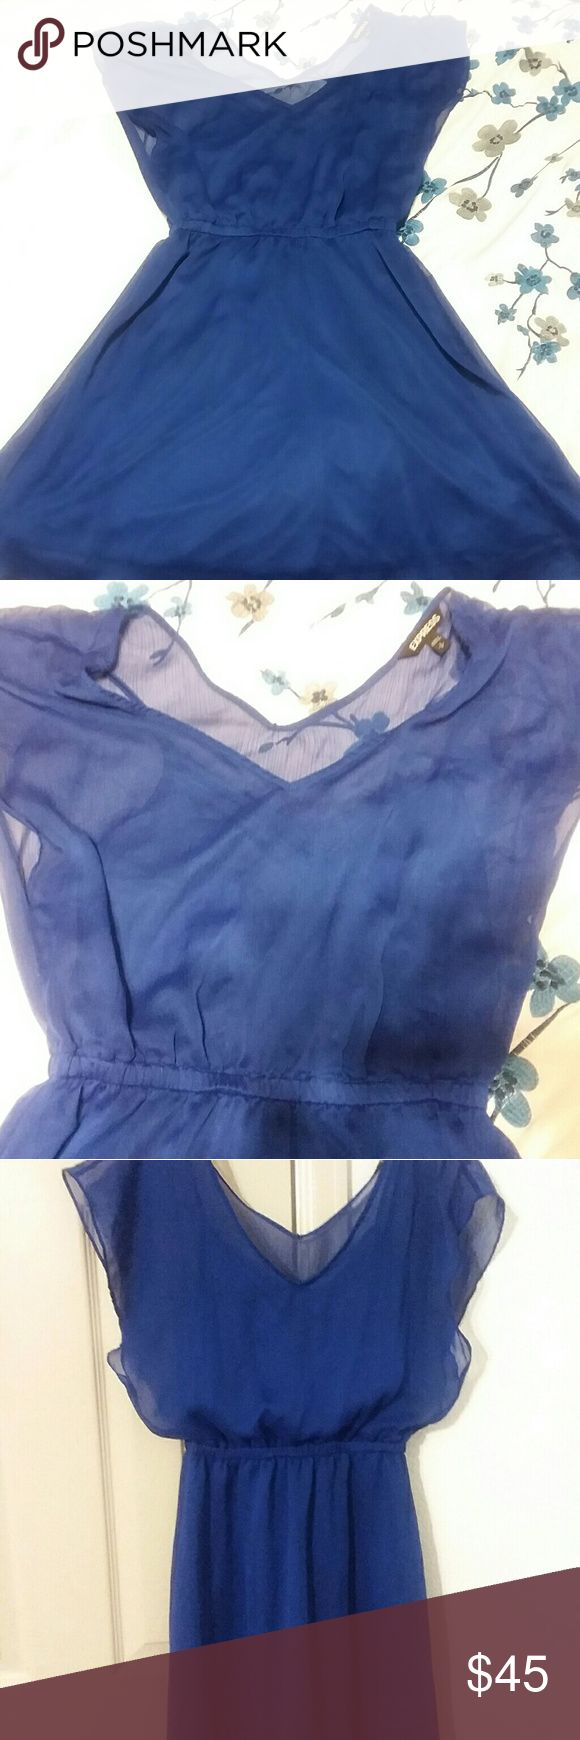 Express Mini Caftan Chiffon Blue Dress Amazing shade of blue Express mini caftan dress, perfect for summer. Shell:100% Polyester, Lining:100% Polyester. Wear with gold or silver belt and heels/sandals/flats. Make an offer! Express Dresses Mini